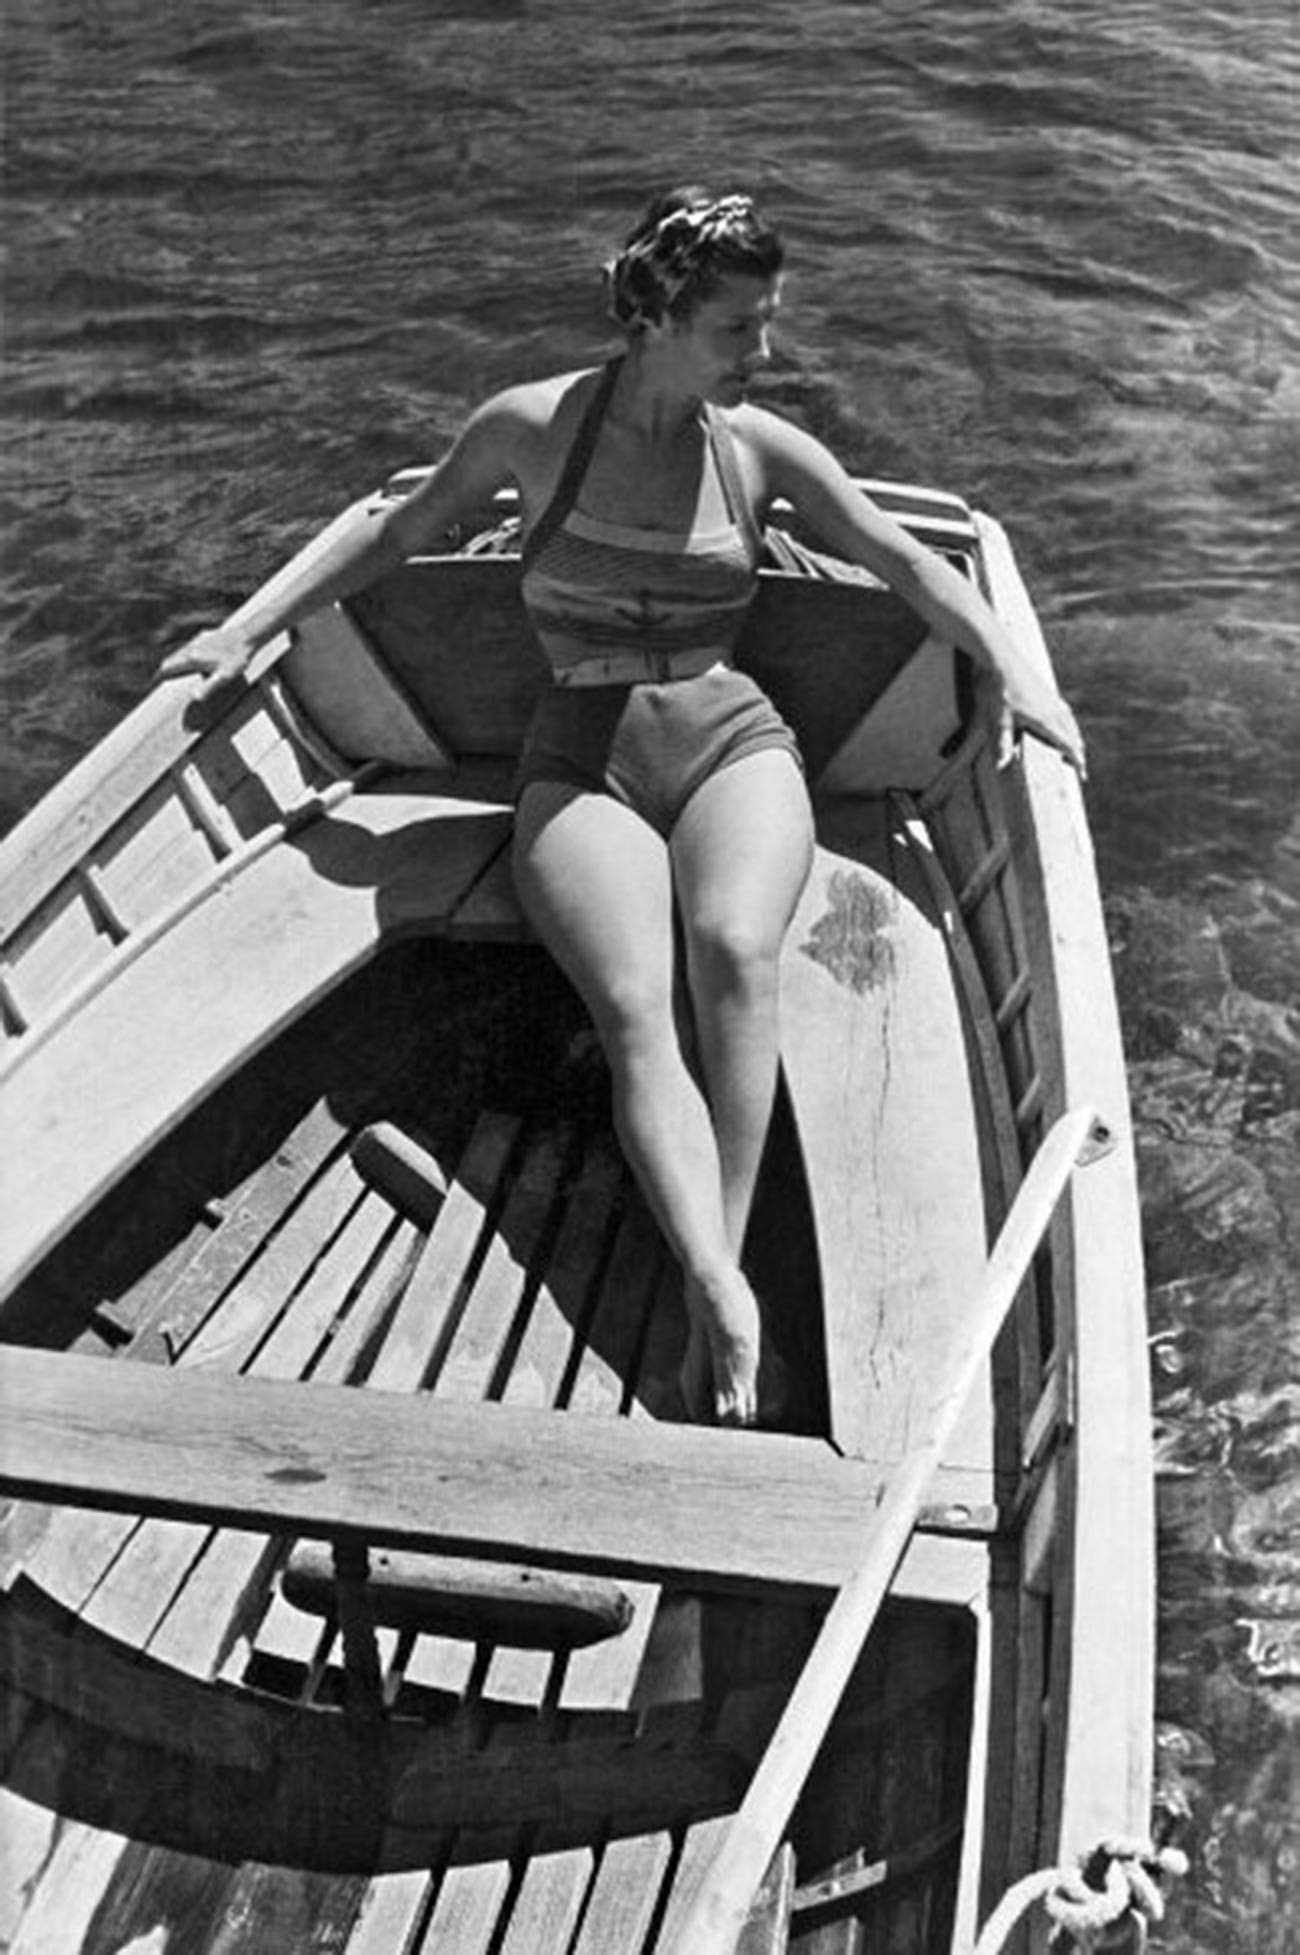 Vacationing in Crimea, 1946